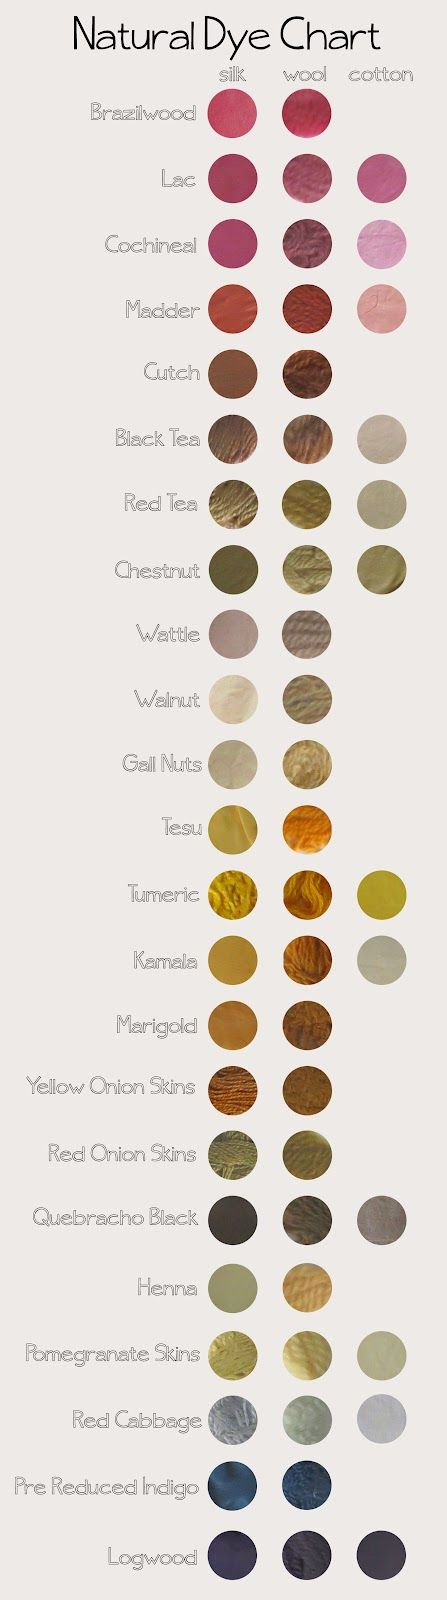 My natural dye chart. Inspiration for my accessory designs.